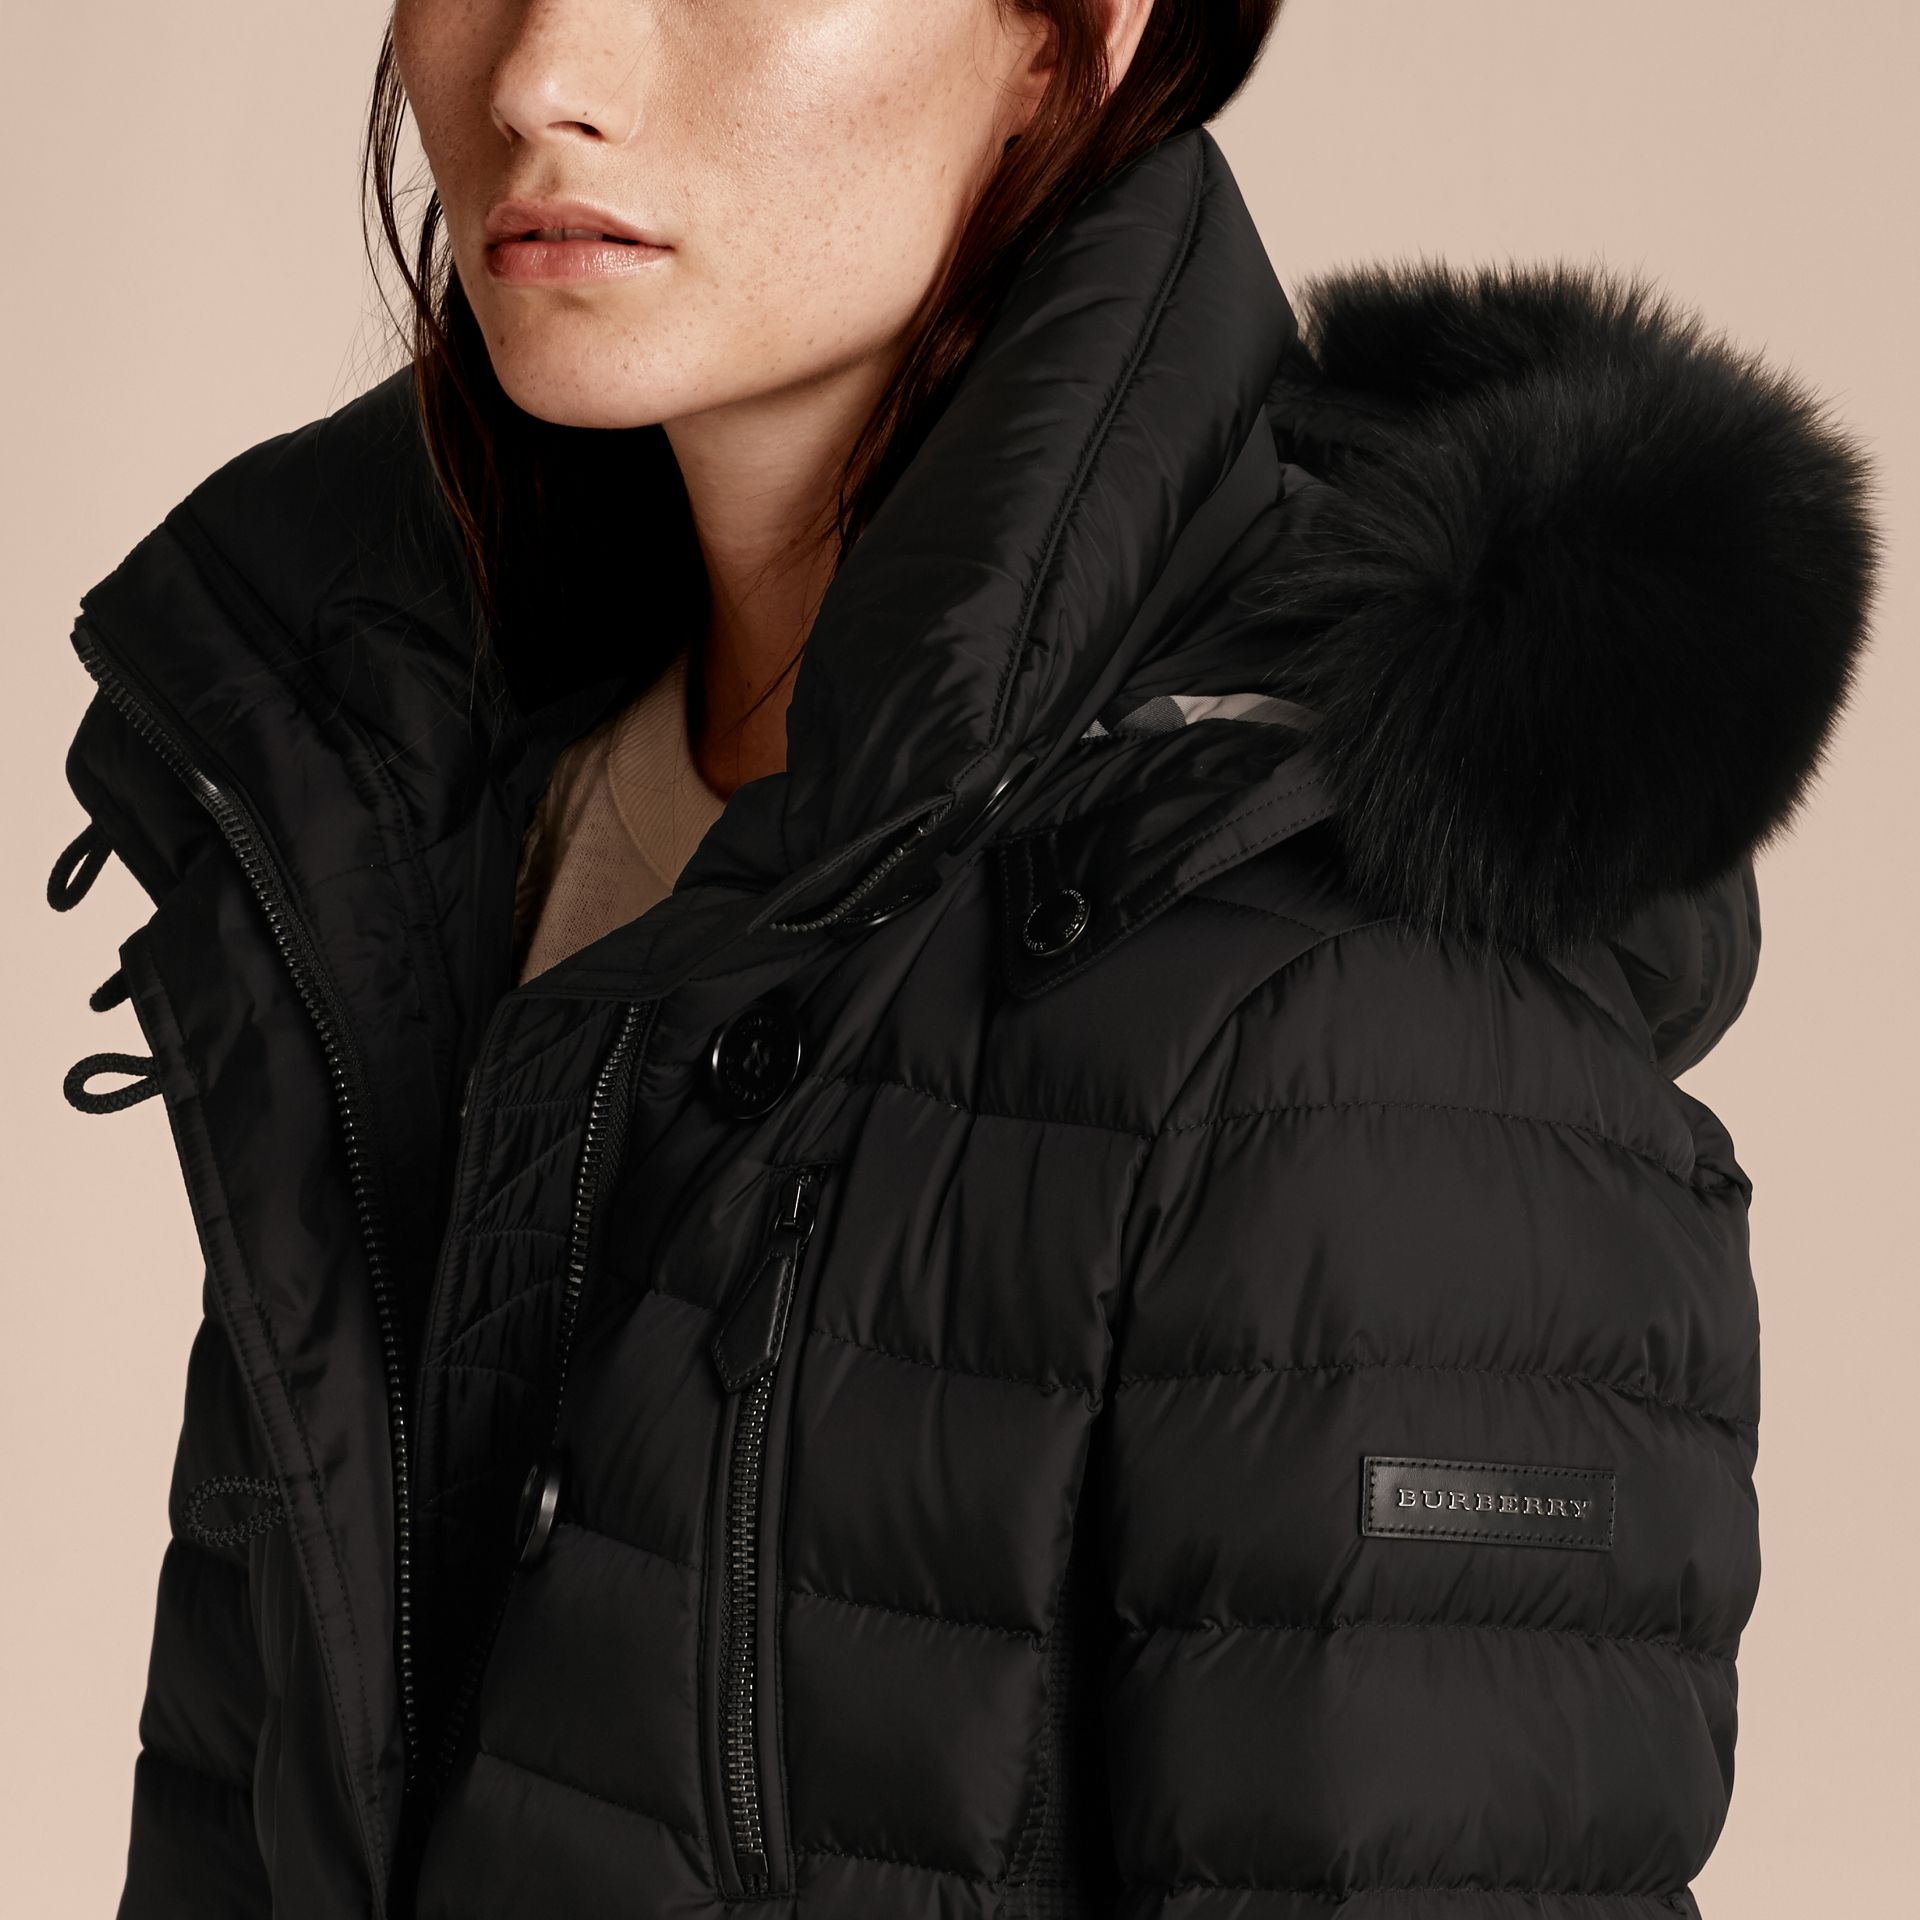 Black Down-filled Parka with Fur Trim Black - gallery image 3